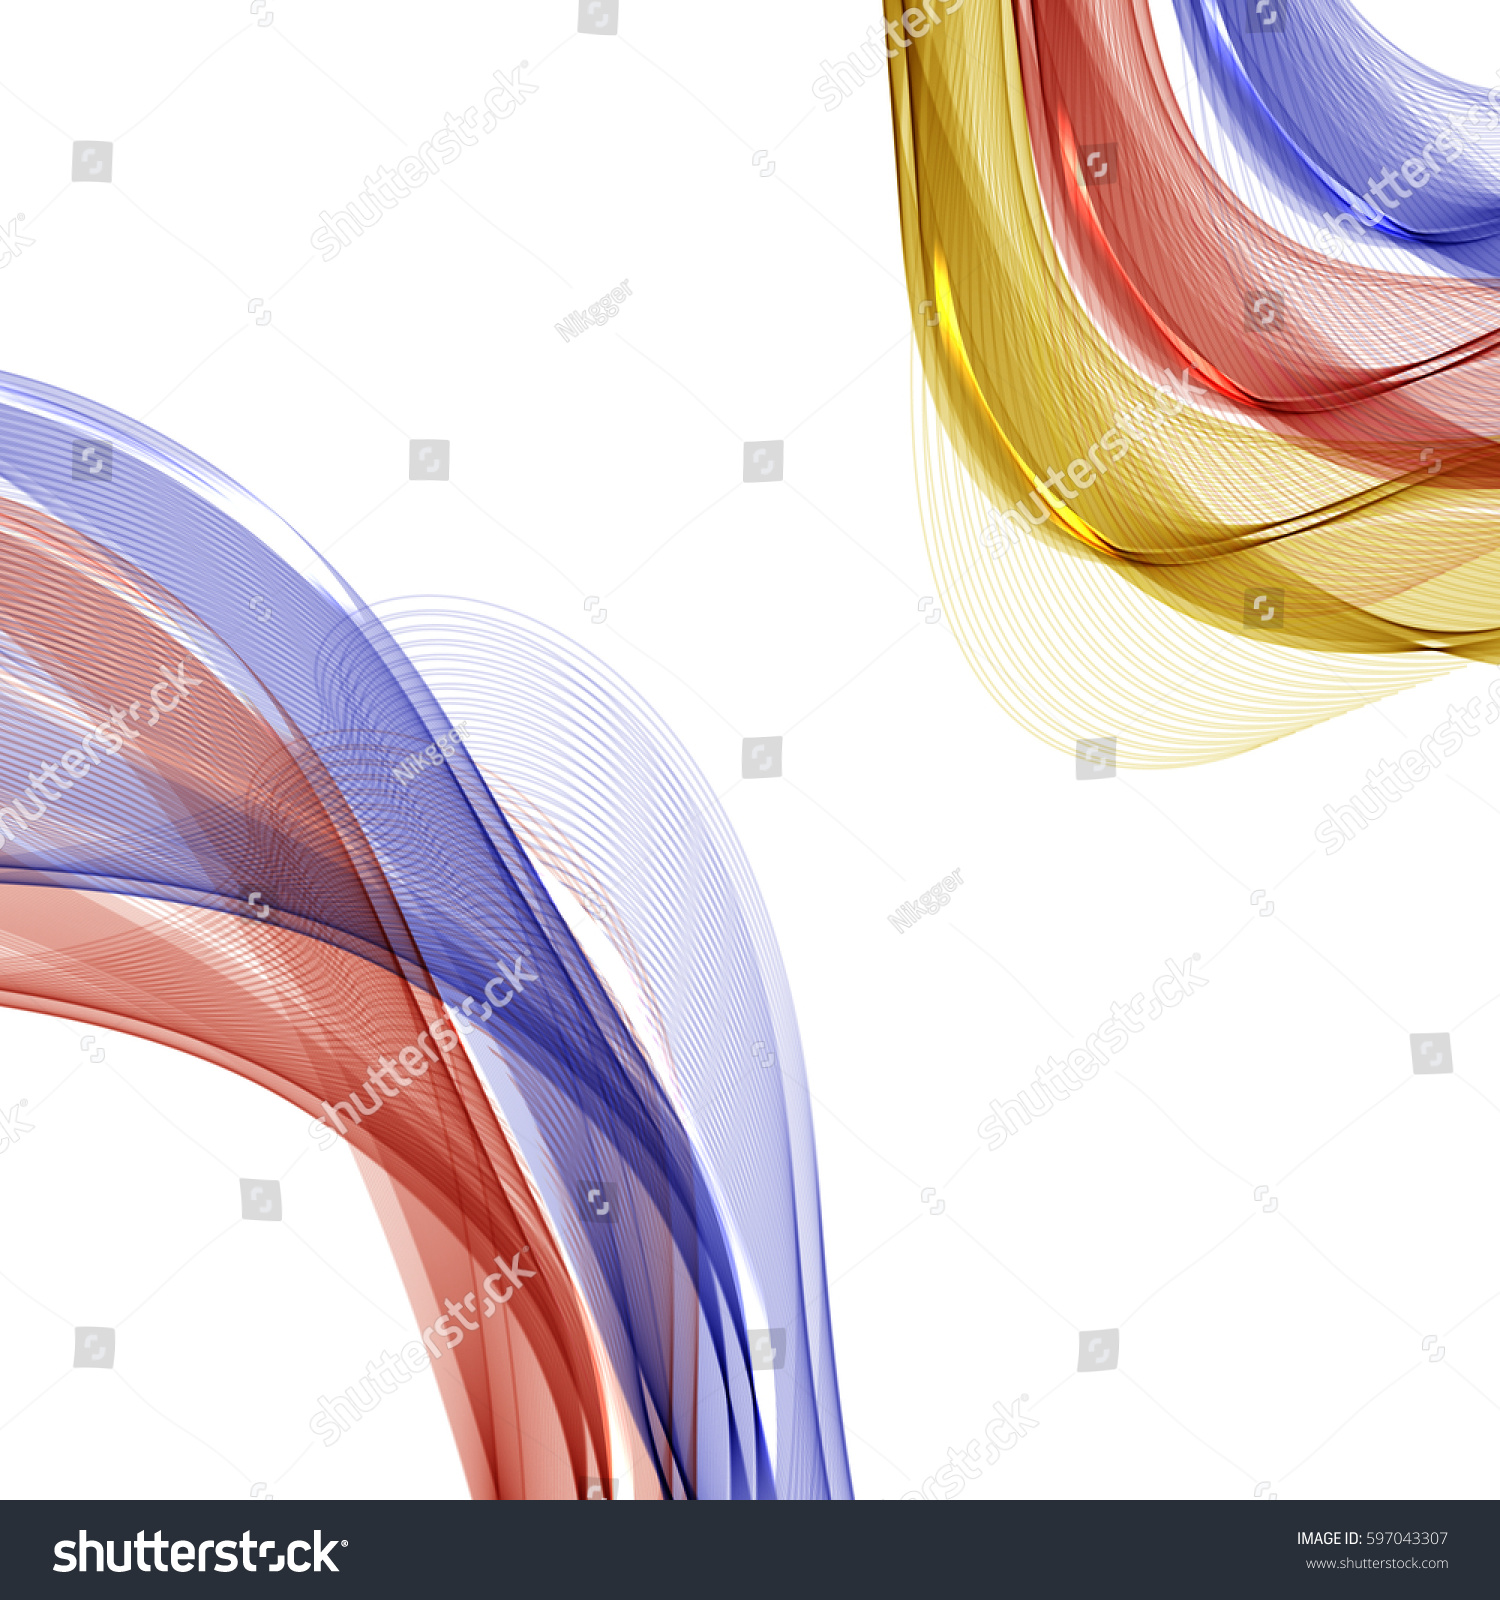 background backgrounds abstract advertisements - photo #11